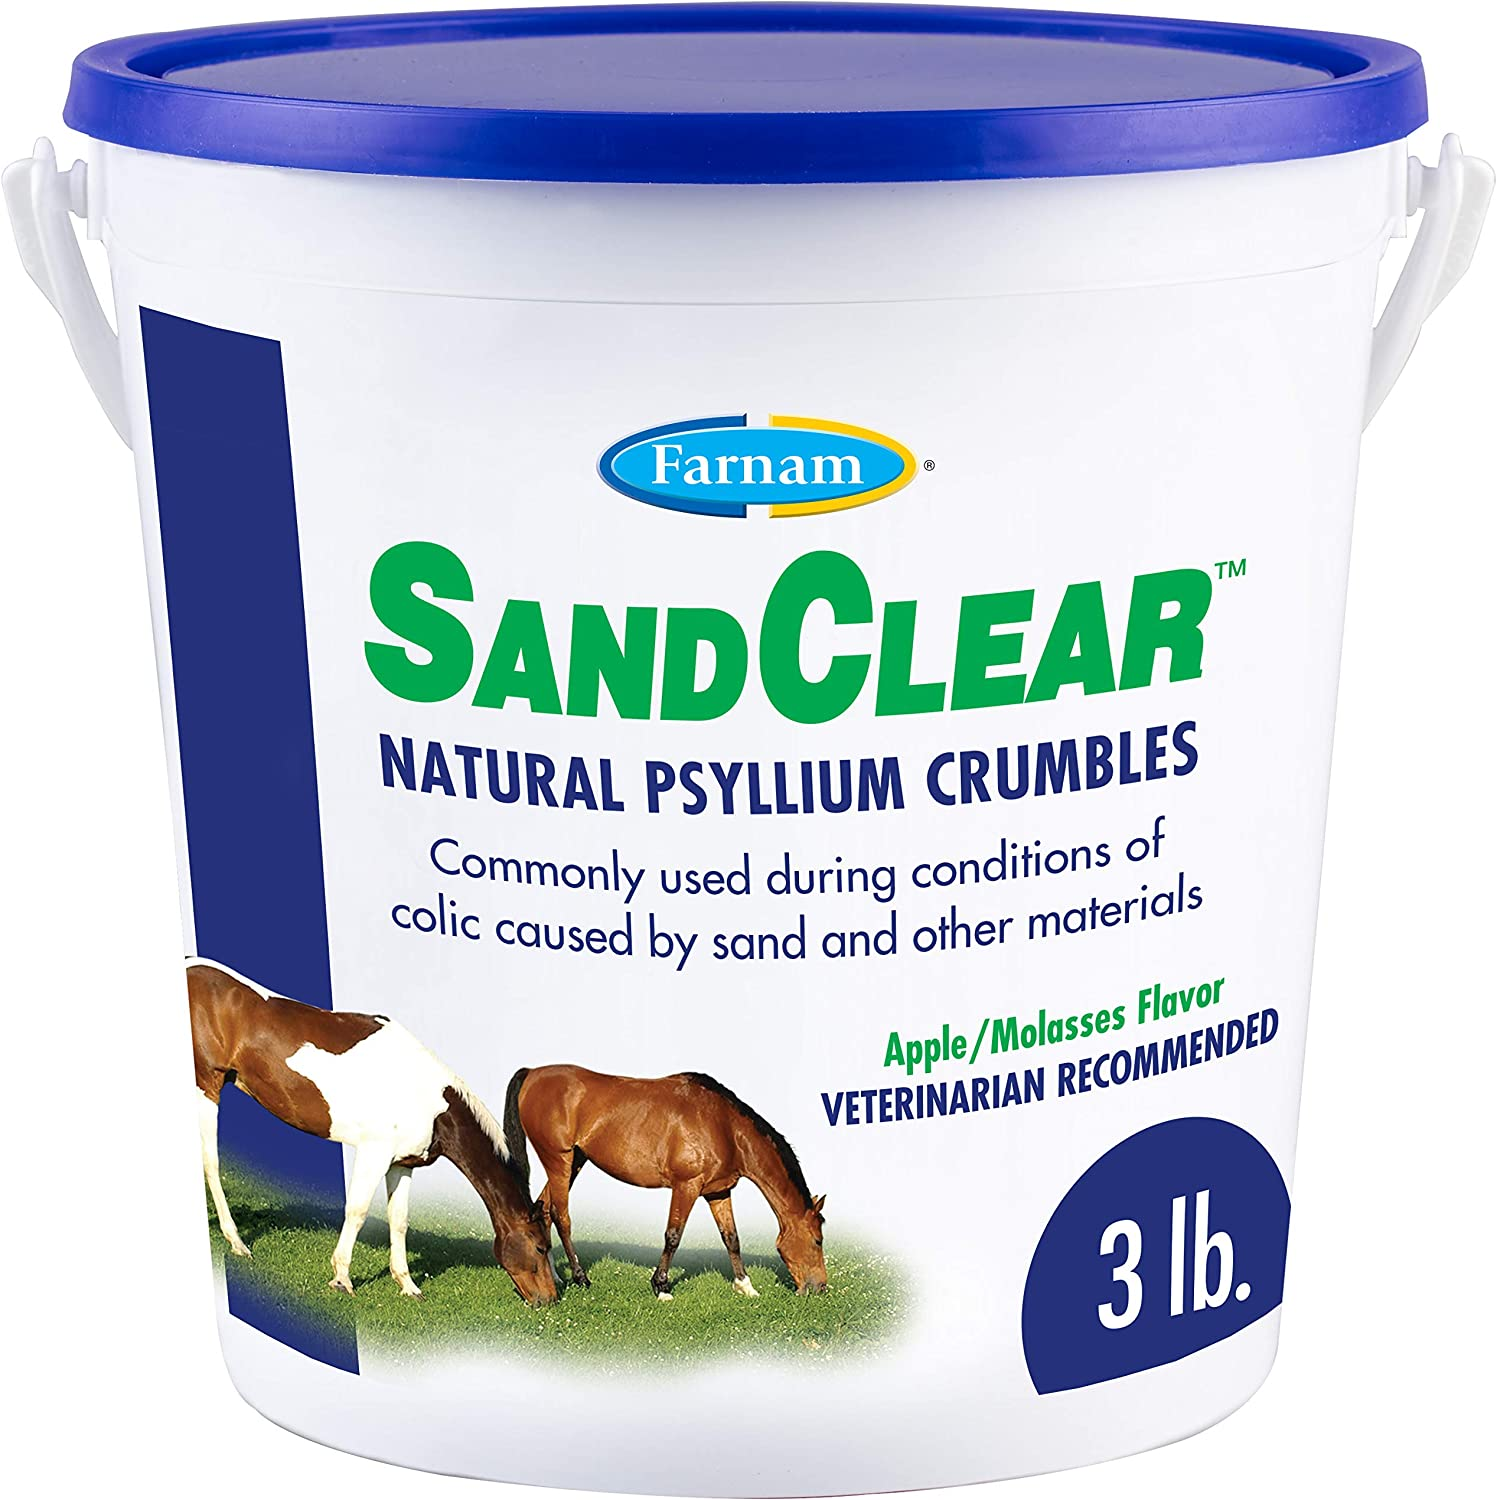 Farnam SandClear Natural Psyllium Crumbles, 3 lbs : Horse Nutritional Supplements And Remedies : Pet Supplies